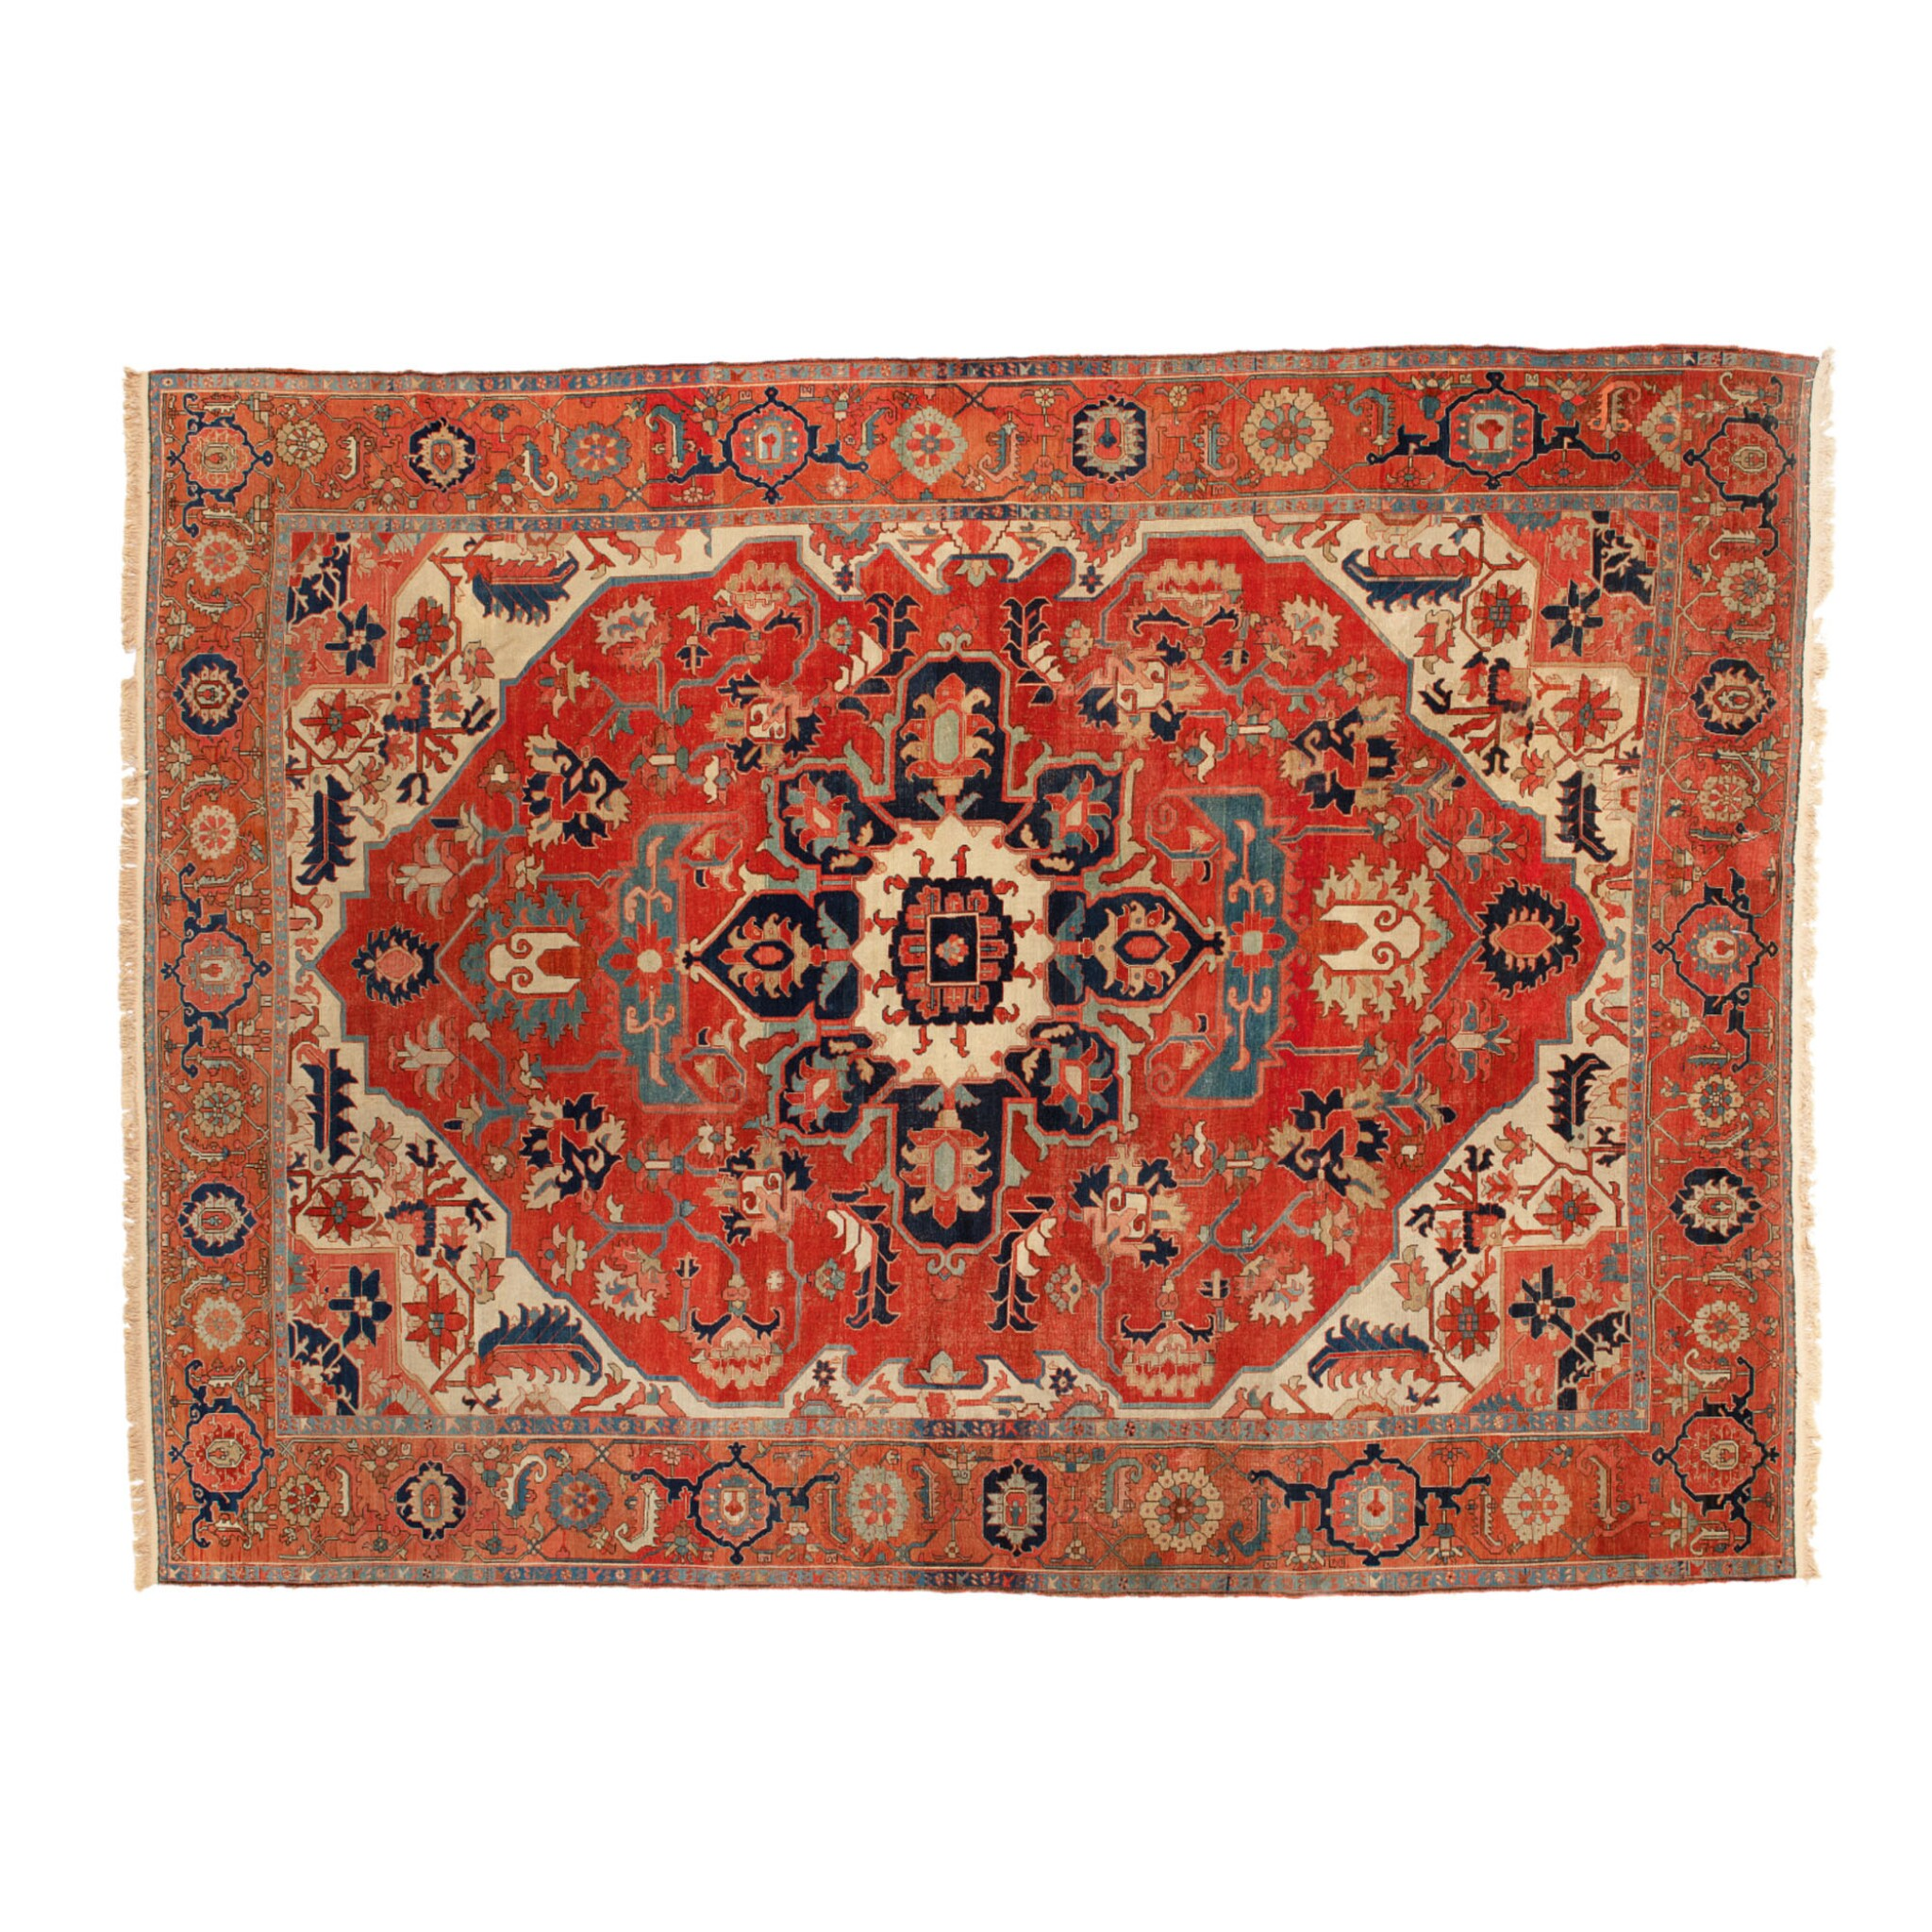 View full screen - View 1 of Lot 583. A HERIZ CARPET, NORTHWEST PERSIA, EARLY 20TH CENTURY.